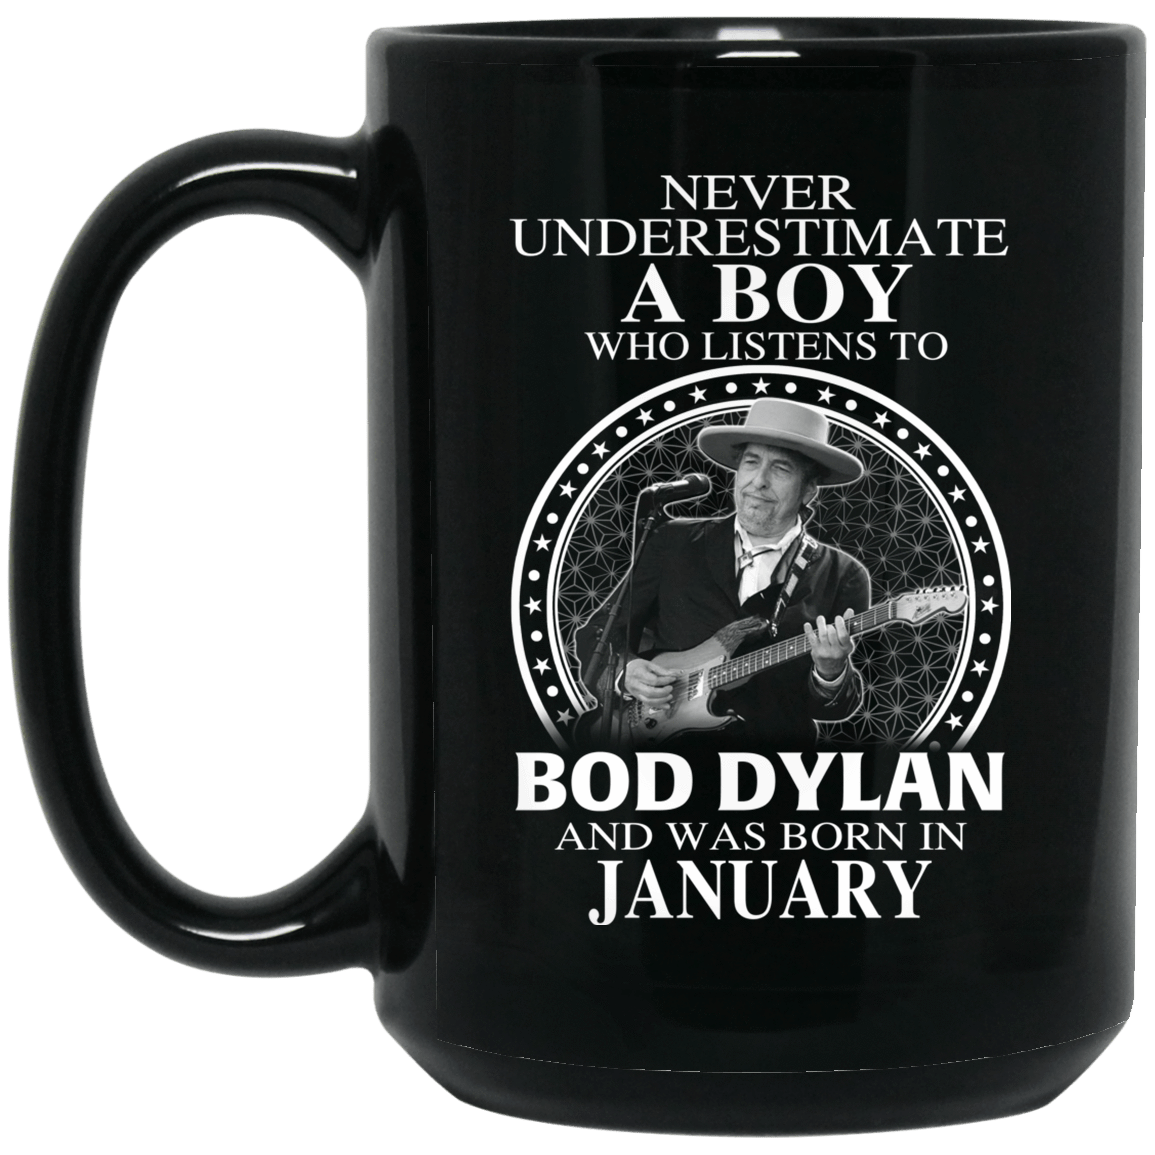 A Boy Who Listens To Bob Dylan And Was Born In January Mug 1066-10182-76154925-49311 - Tee Ript